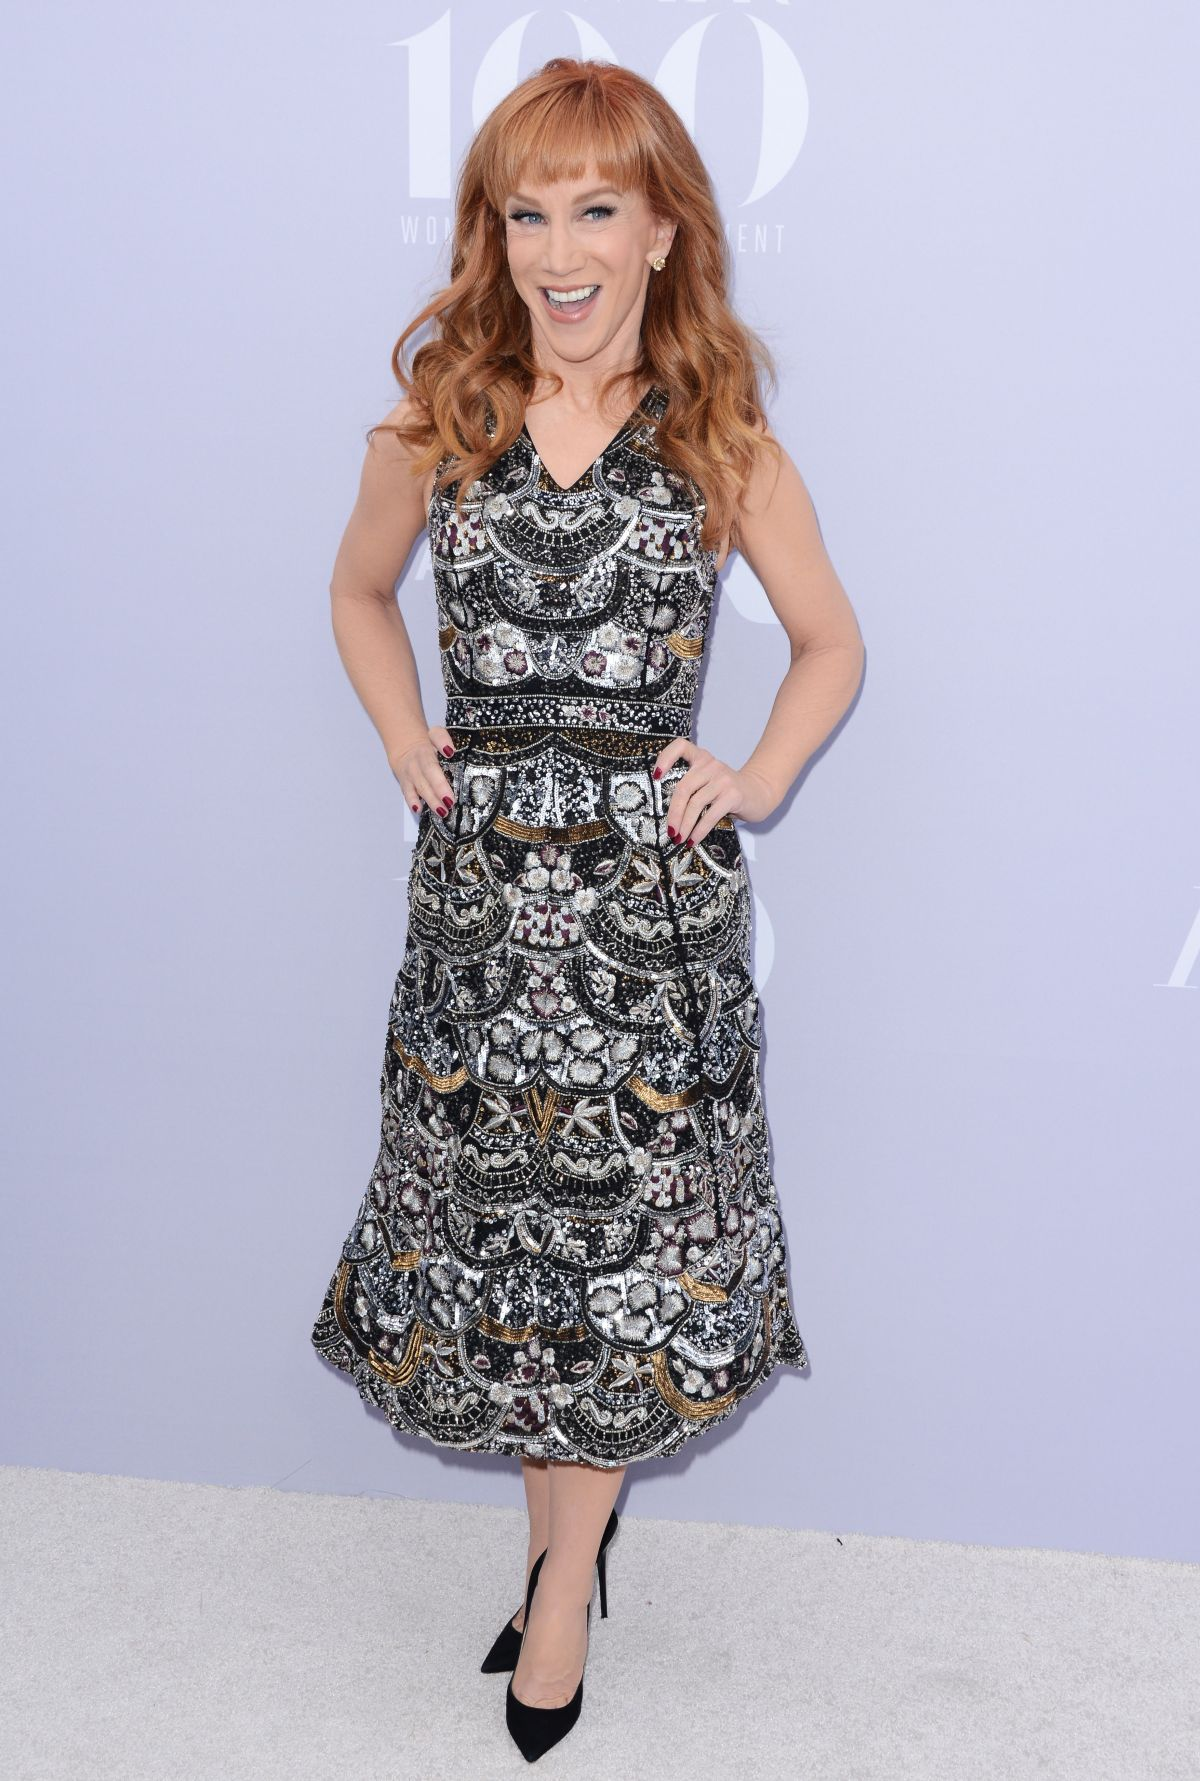 KATHY GRIFFIN at 24th Annual Women in Entertainment Breakfast 12/09/2015